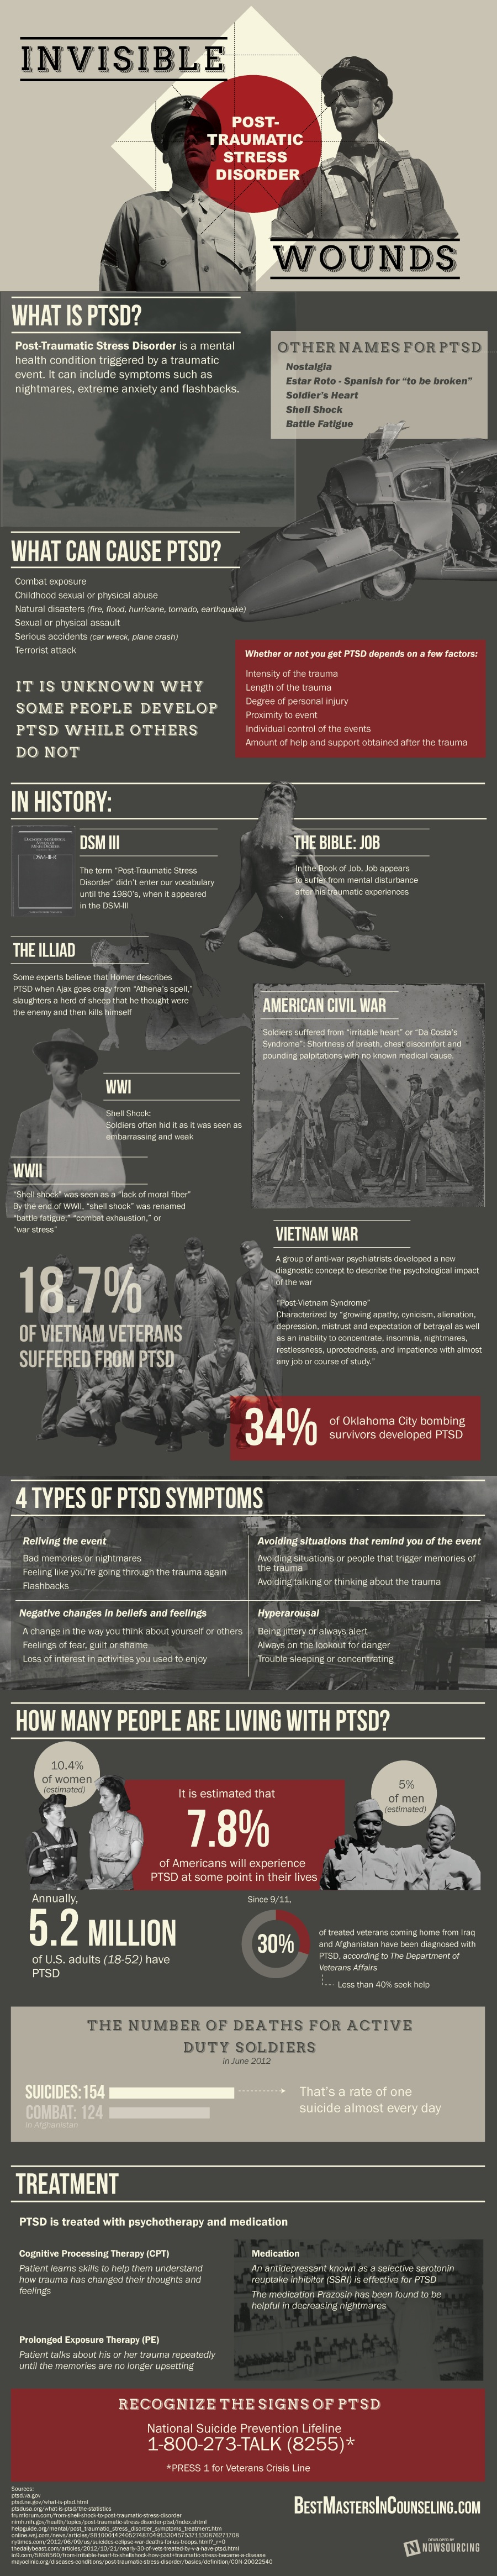 Invisible Wounds: PTSD